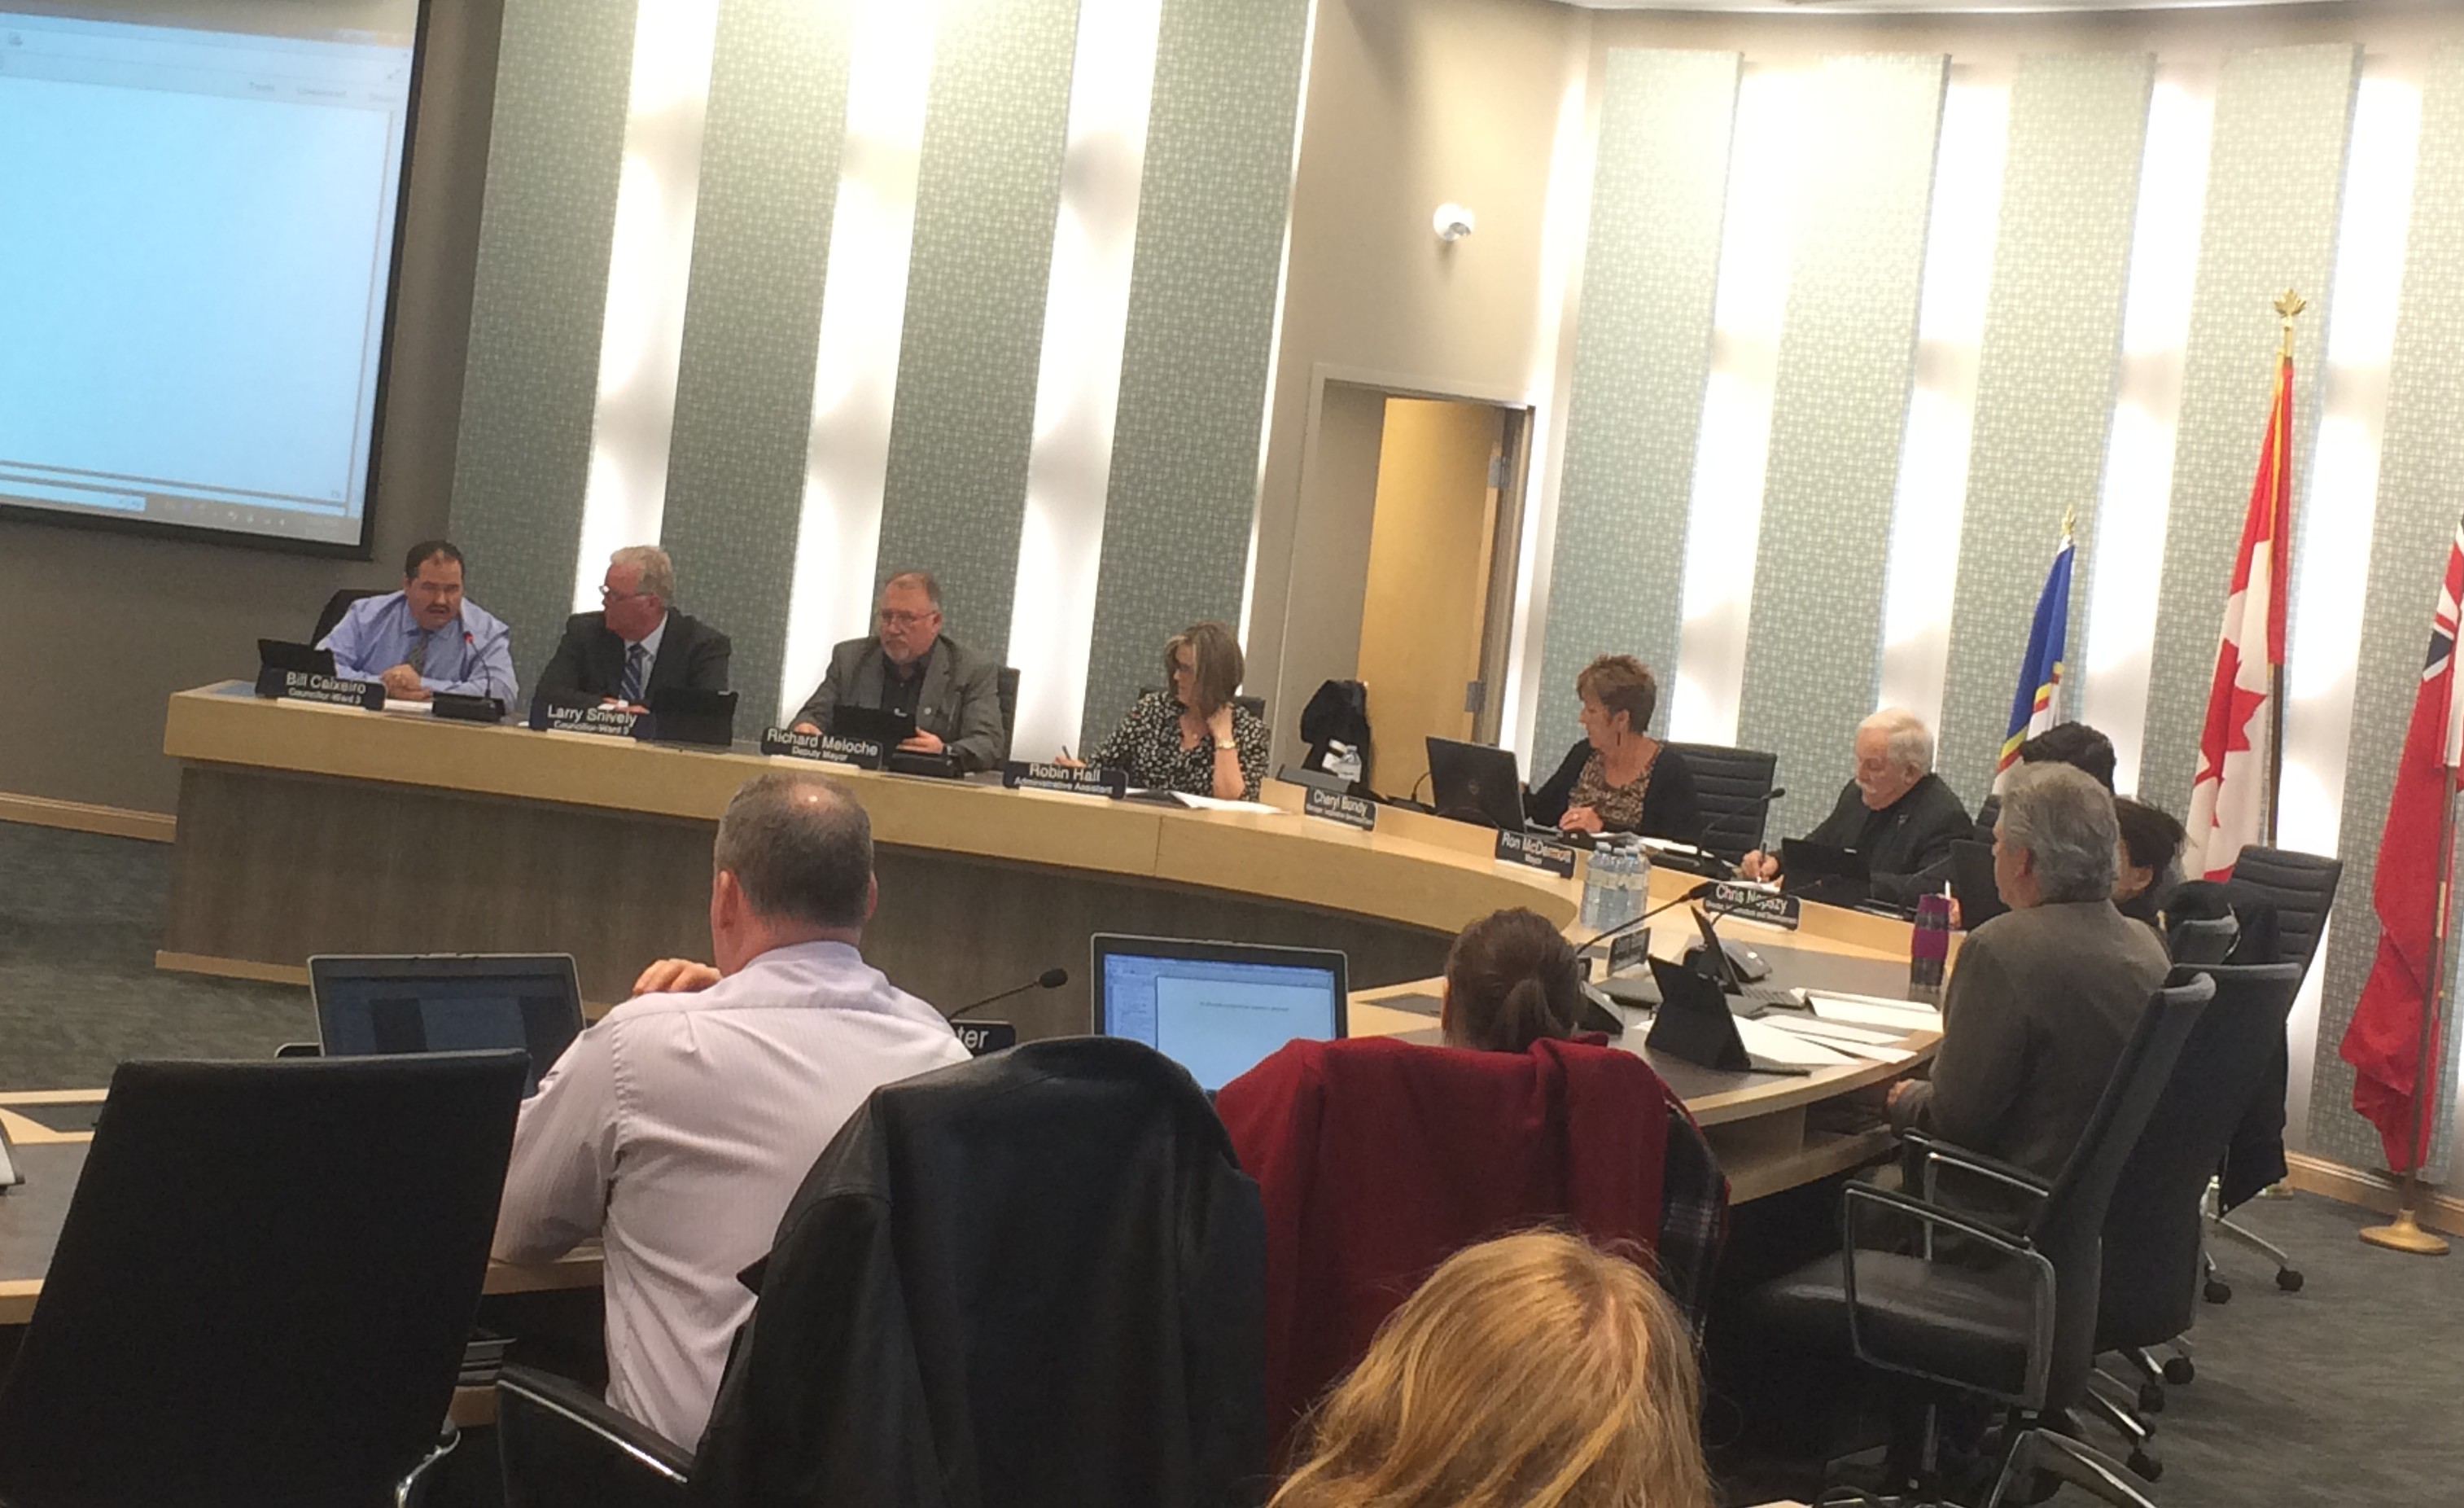 Essex Town Council meets for its regular meeting at the Essex Civic Centre on March 2, 2015. (Photo by Ricardo Veneza)